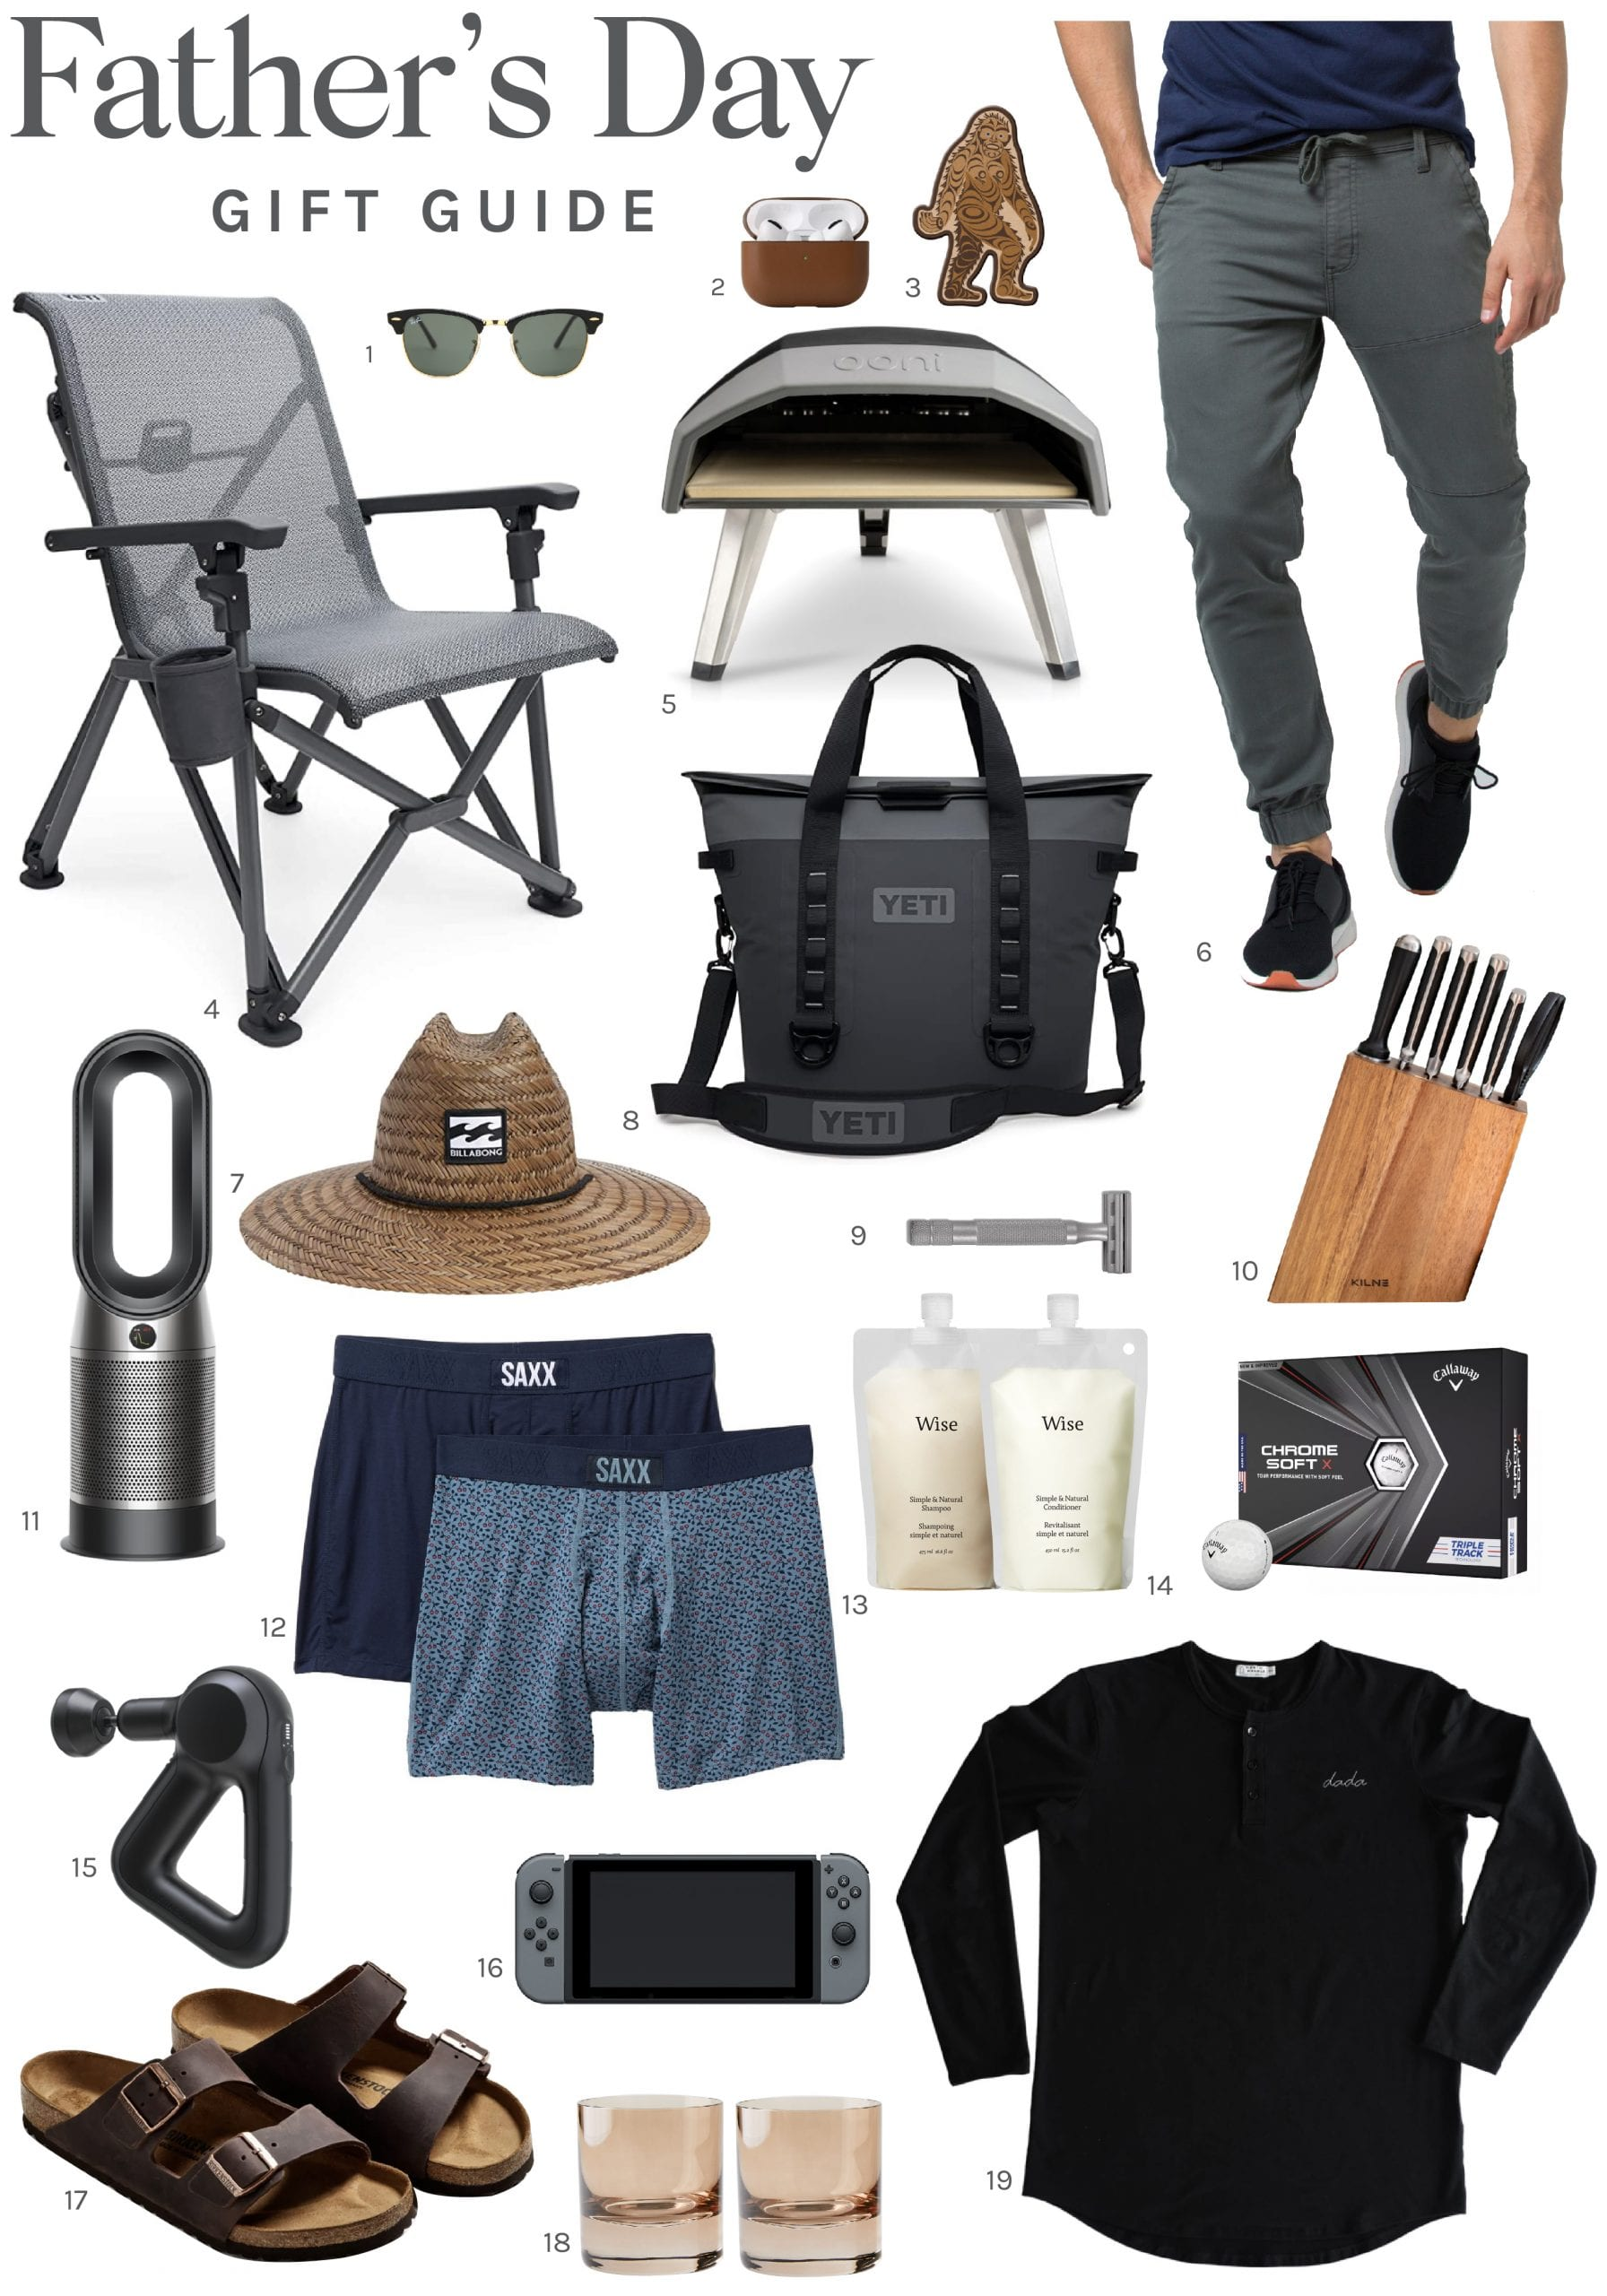 Justin Pasutto's Father's Day Gift Guide